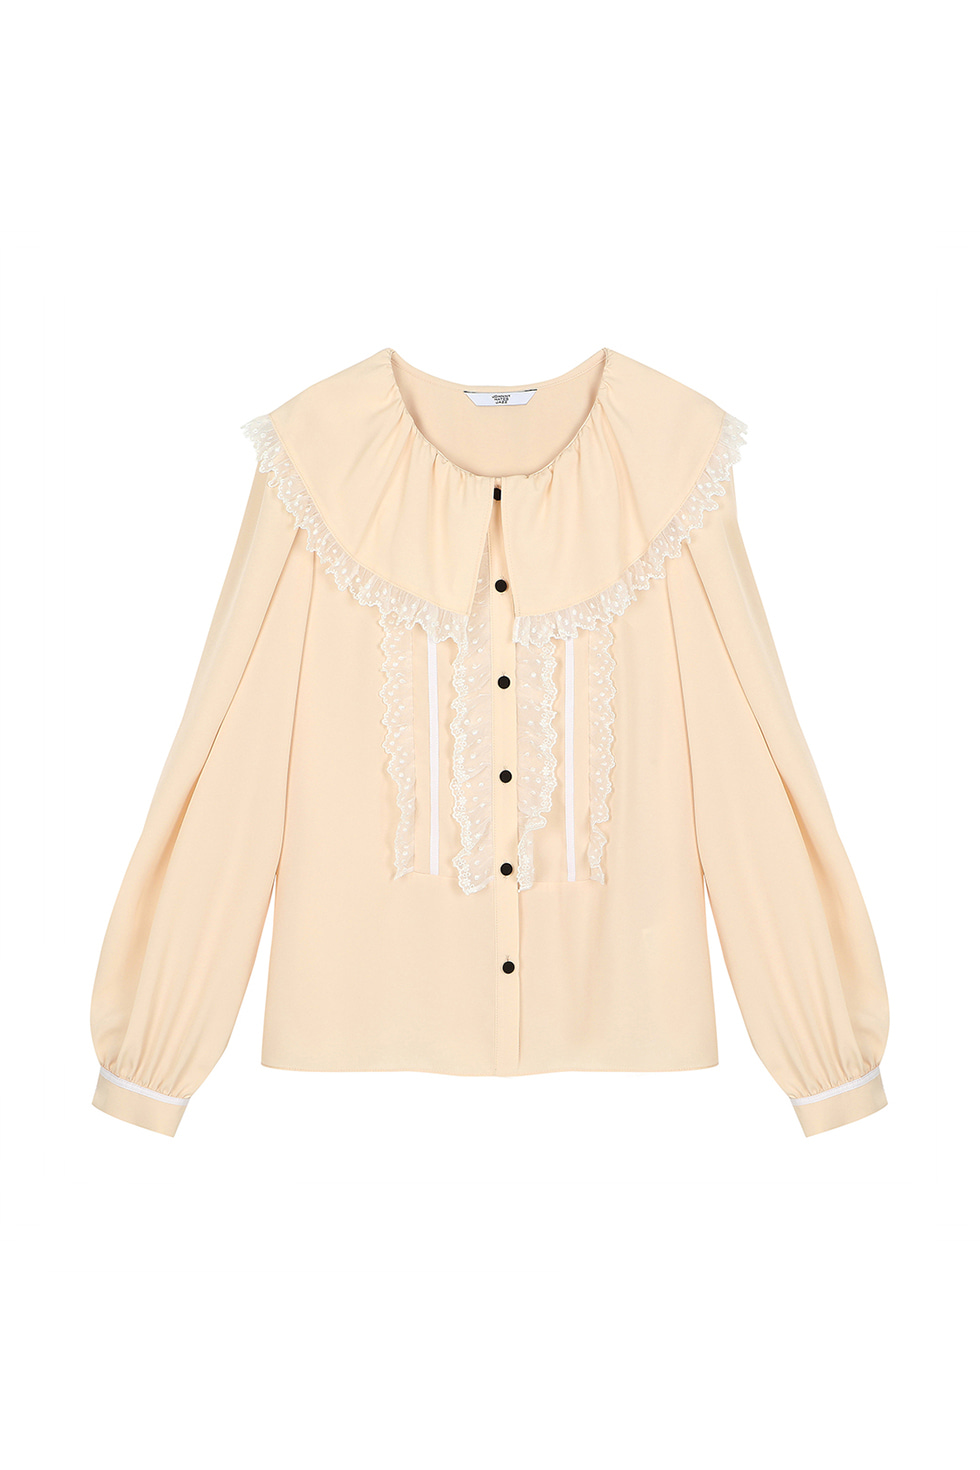 LACE FRILL BLOUSE - BEIGE